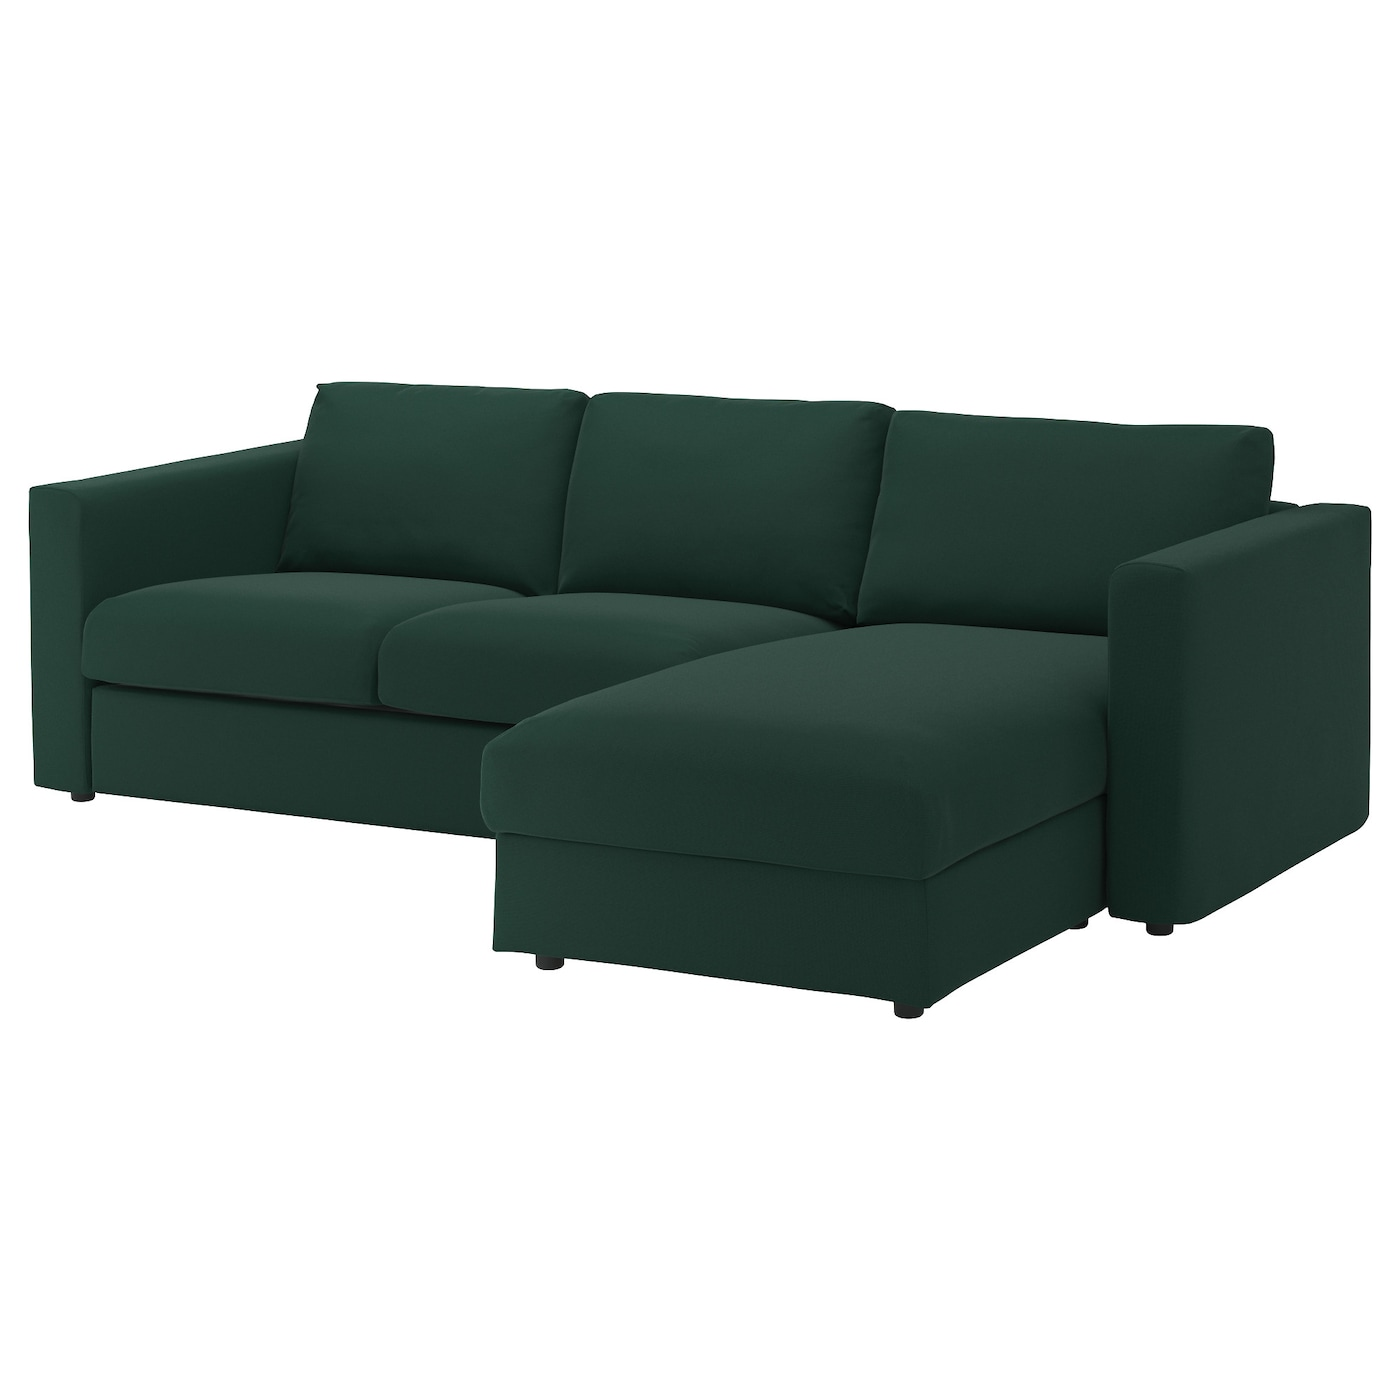 Vimle 3 seat sofa with chaise longue gunnared dark green for Chaise and sofa